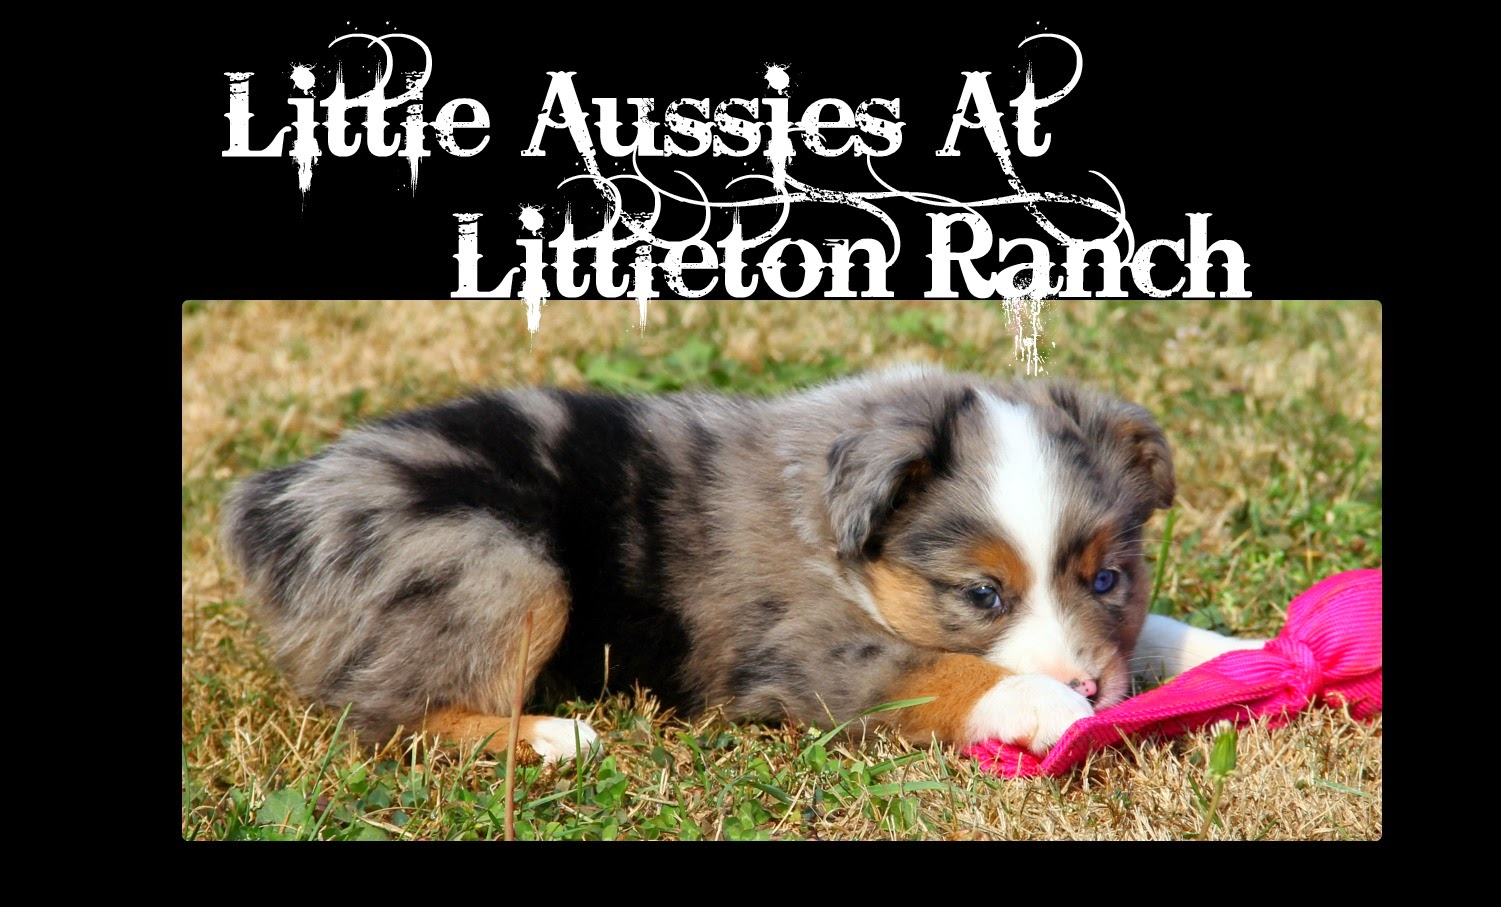 Little Aussies at Littleton Ranch